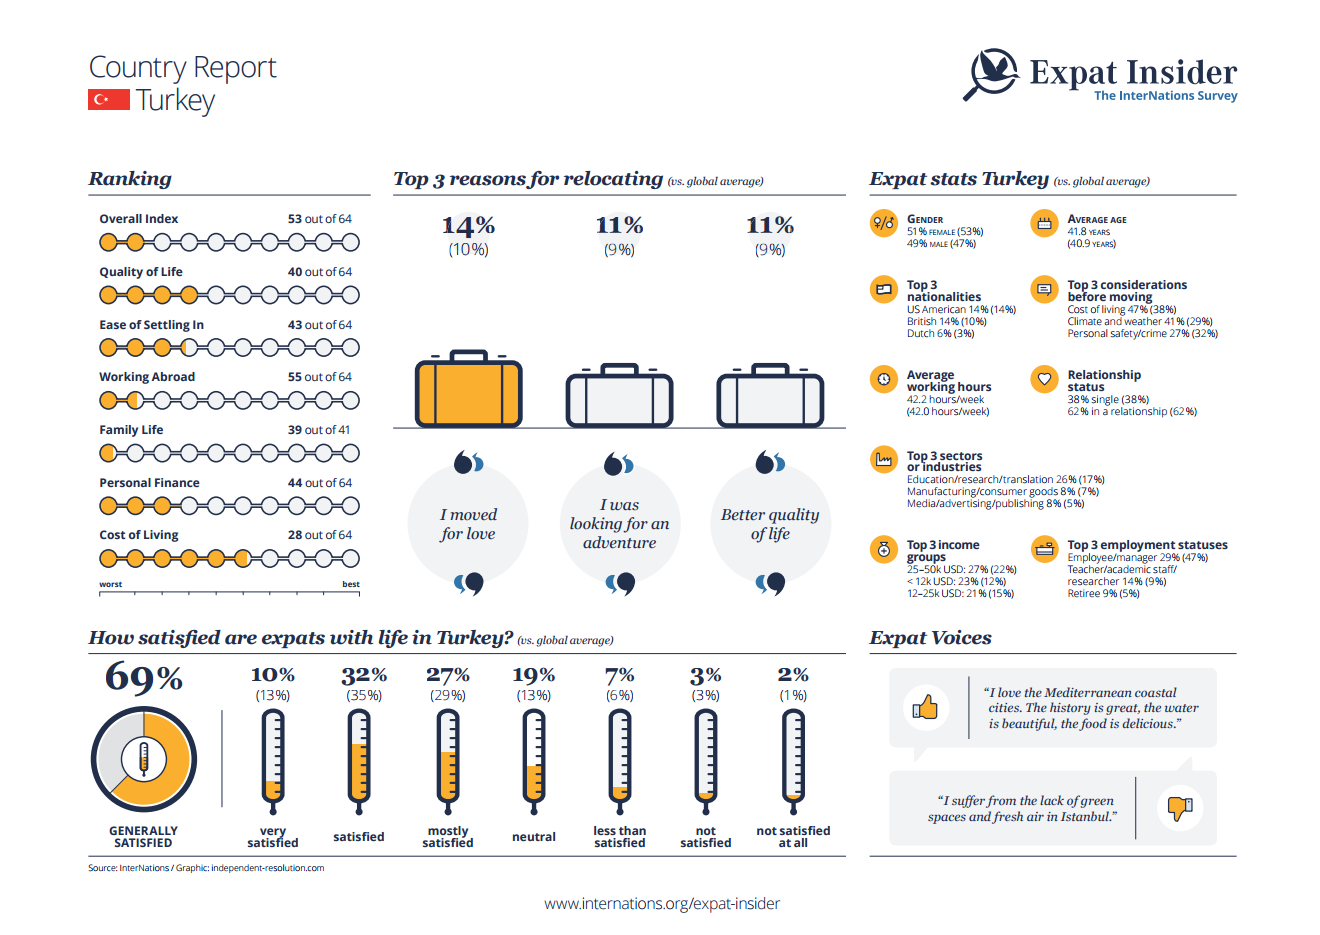 Expat statistics for Turkey - infographic